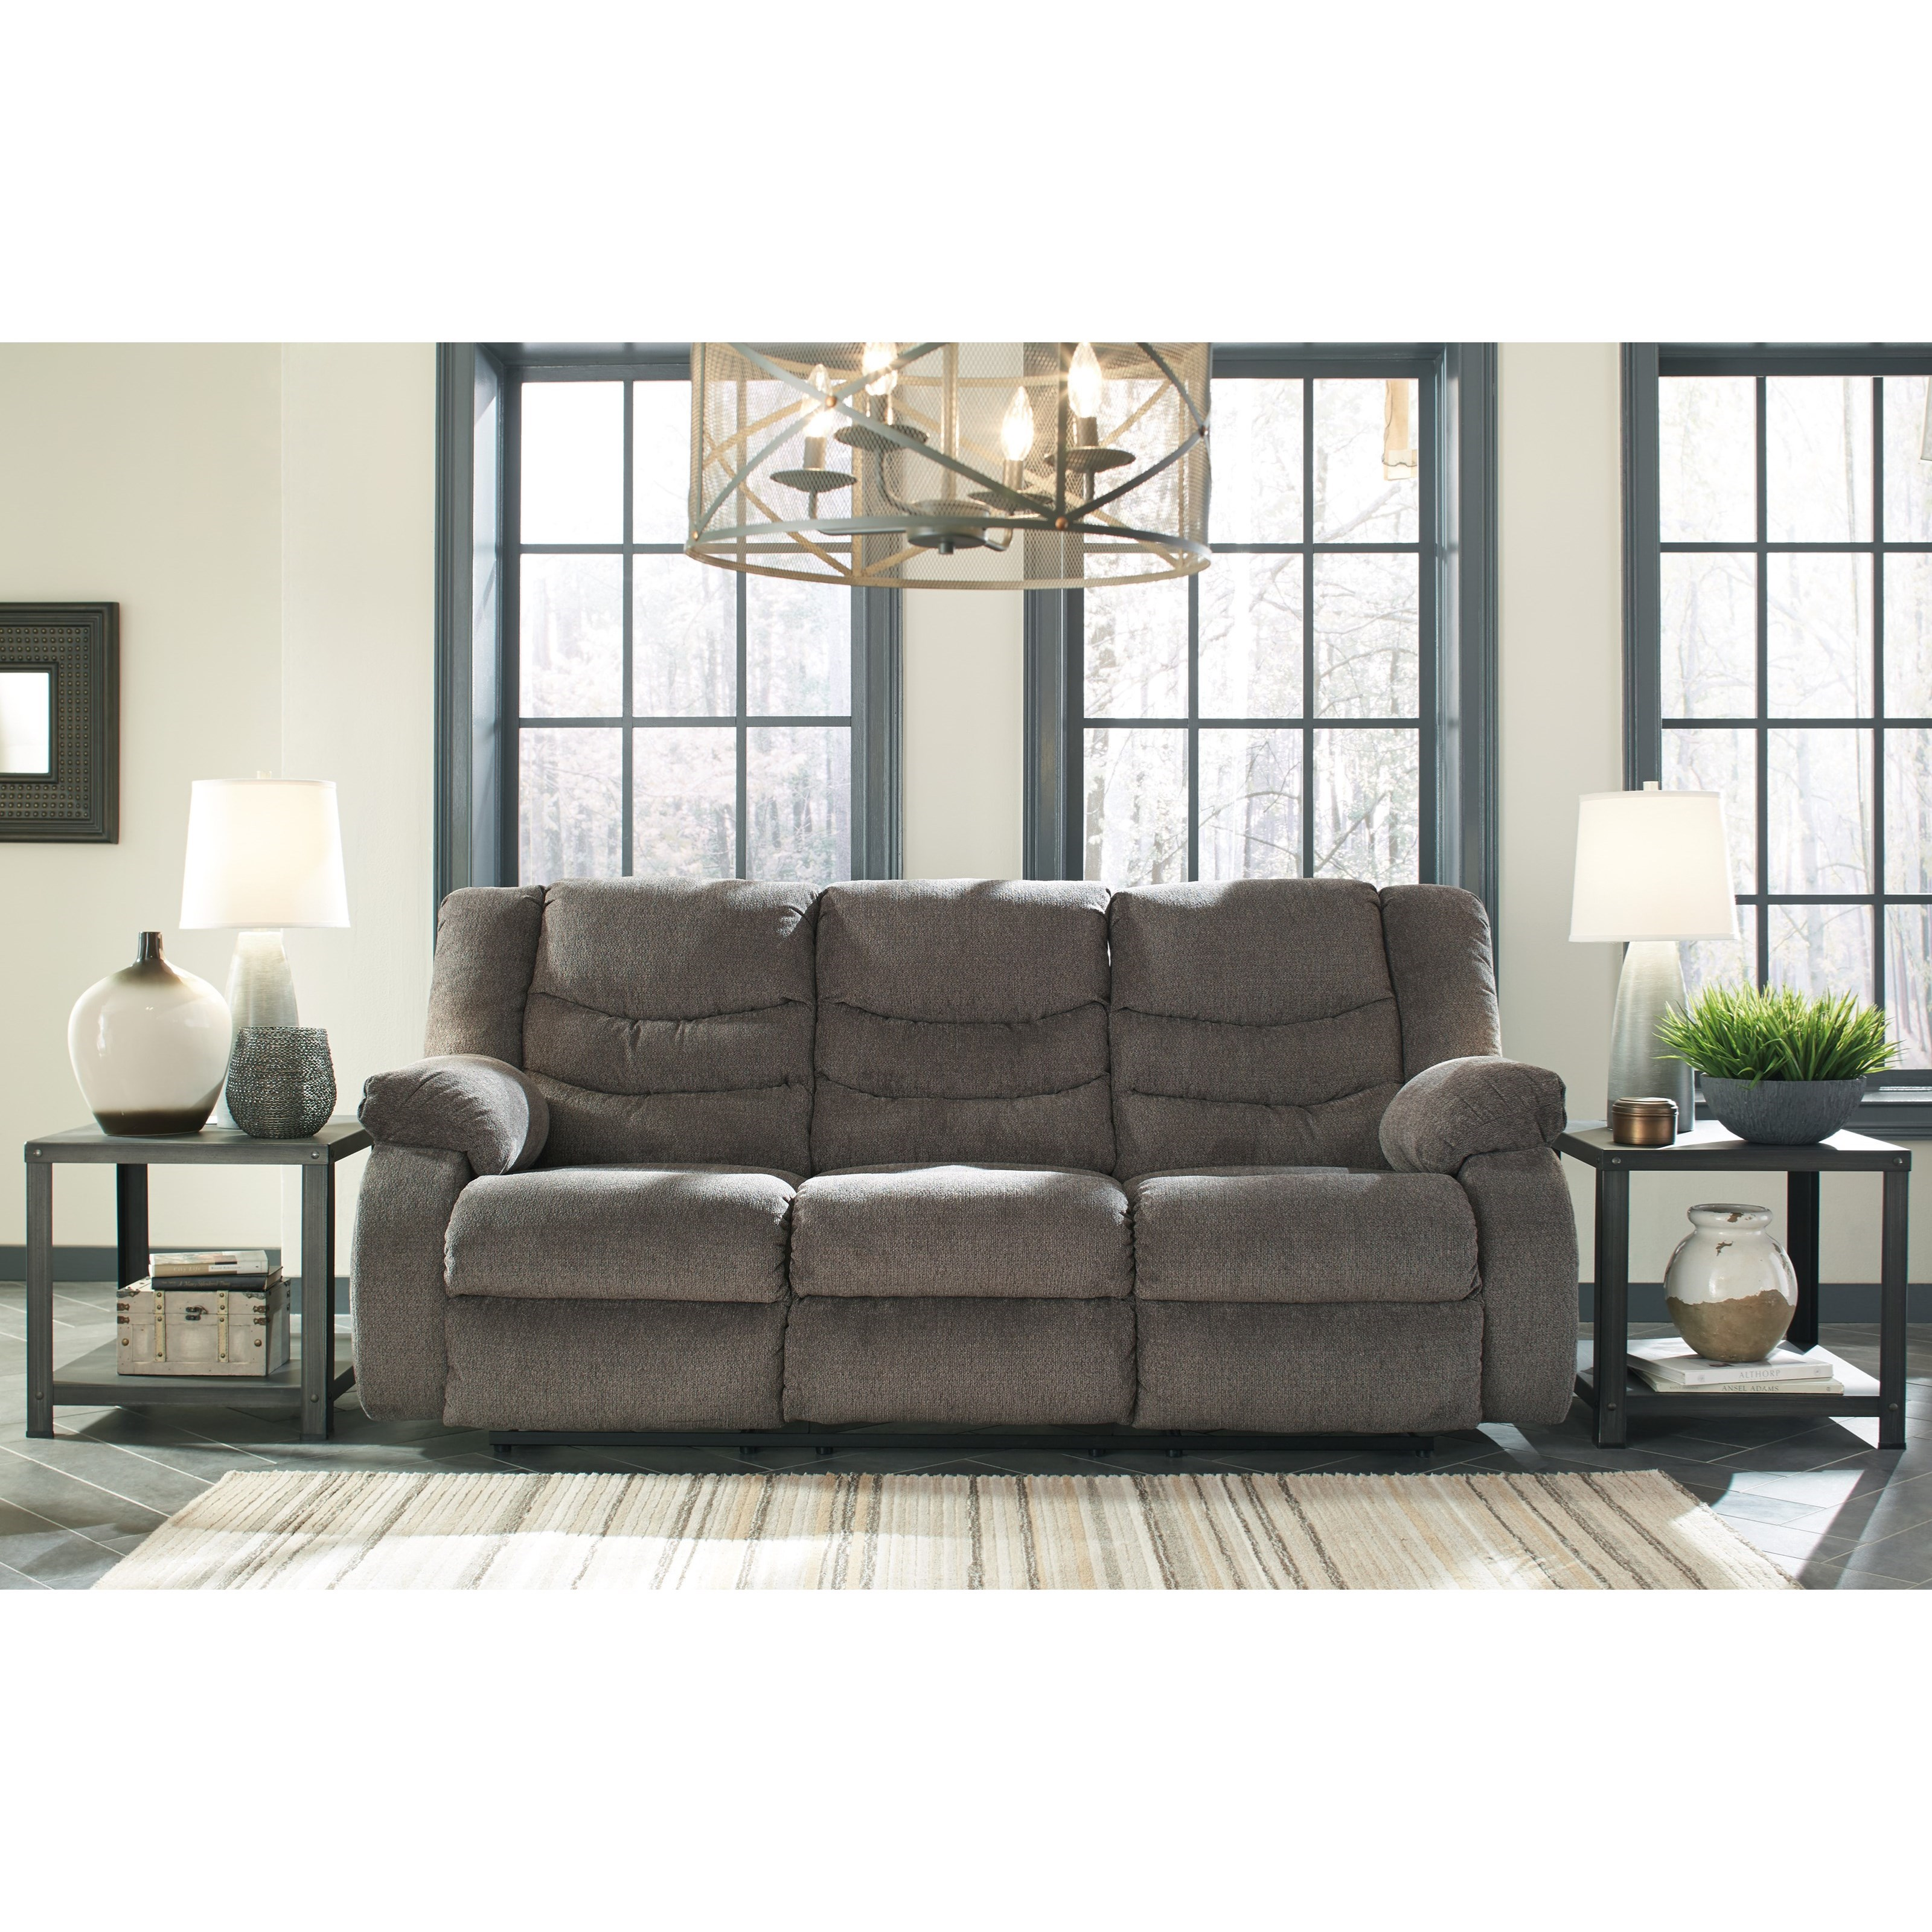 Sectional Sofas Muncie Indiana: Signature Design By Ashley Tulen 9860688 Contemporary